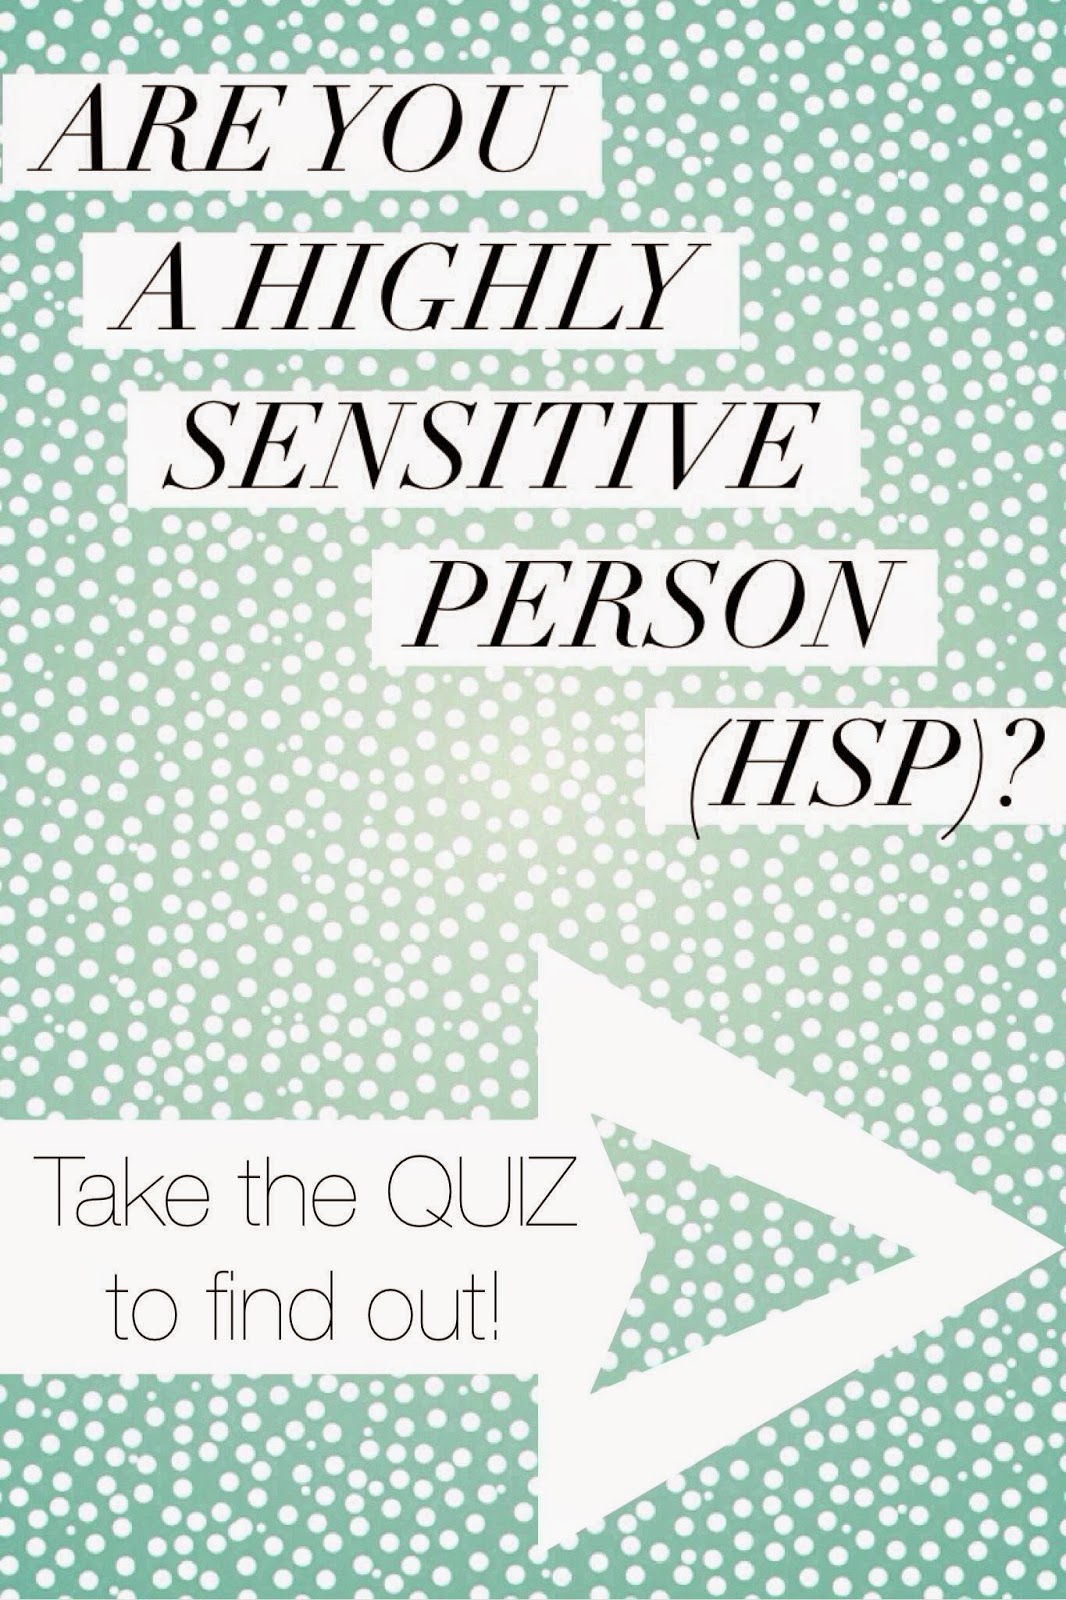 Are you a Highly Sensitive Person? Take the Quiz to Find Out